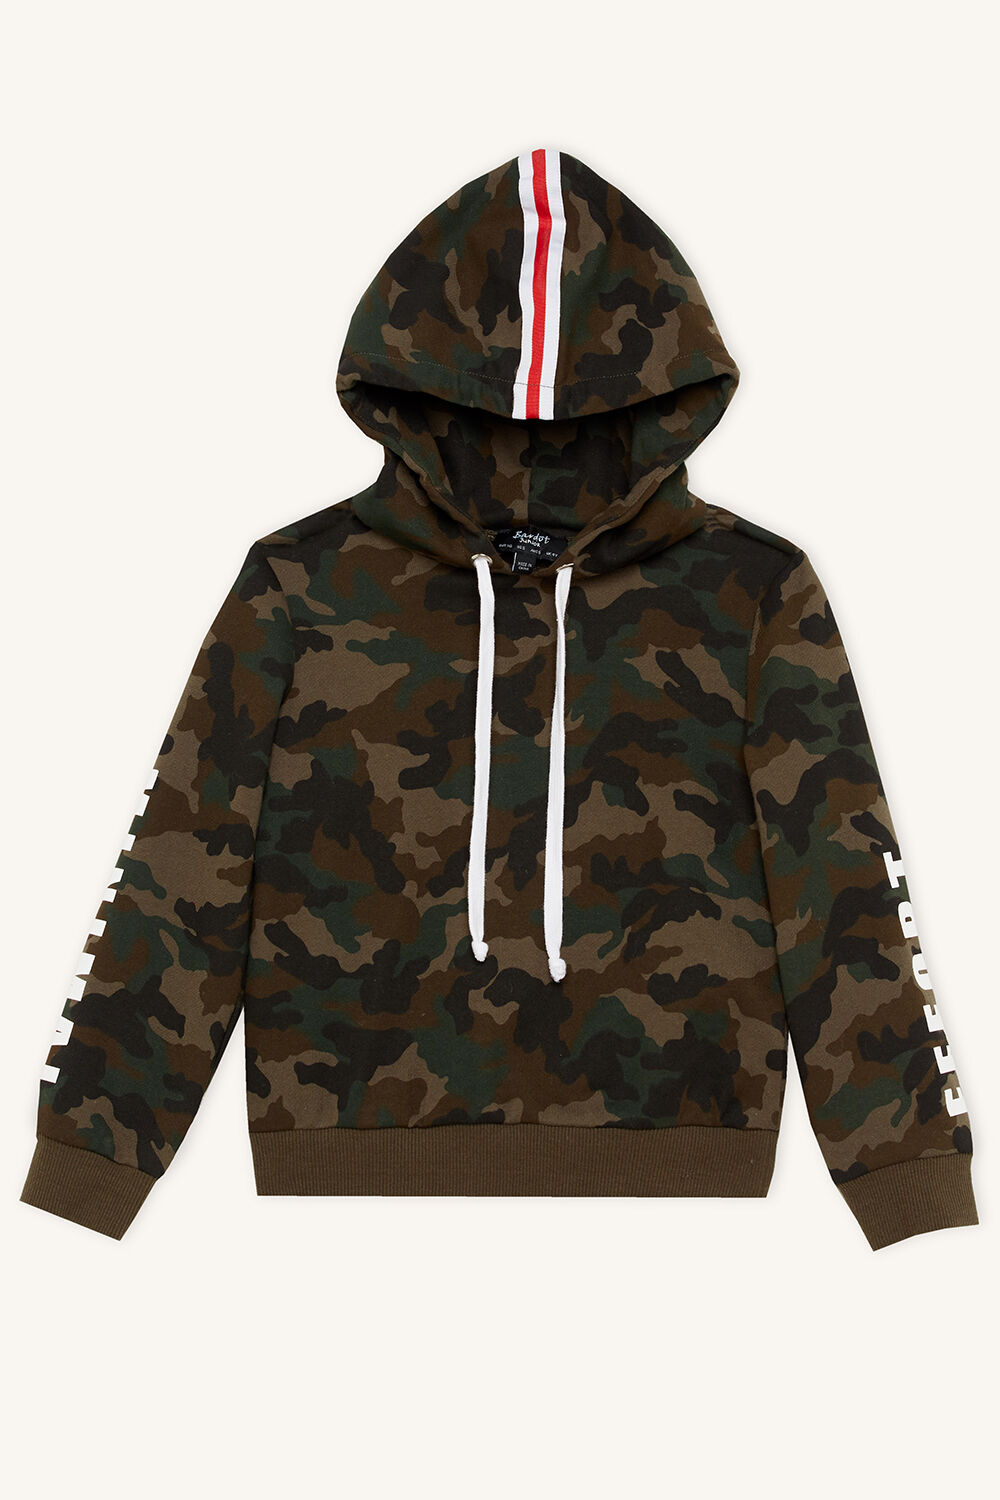 MINIMAL EFFORT HOODY in colour BURNT OLIVE